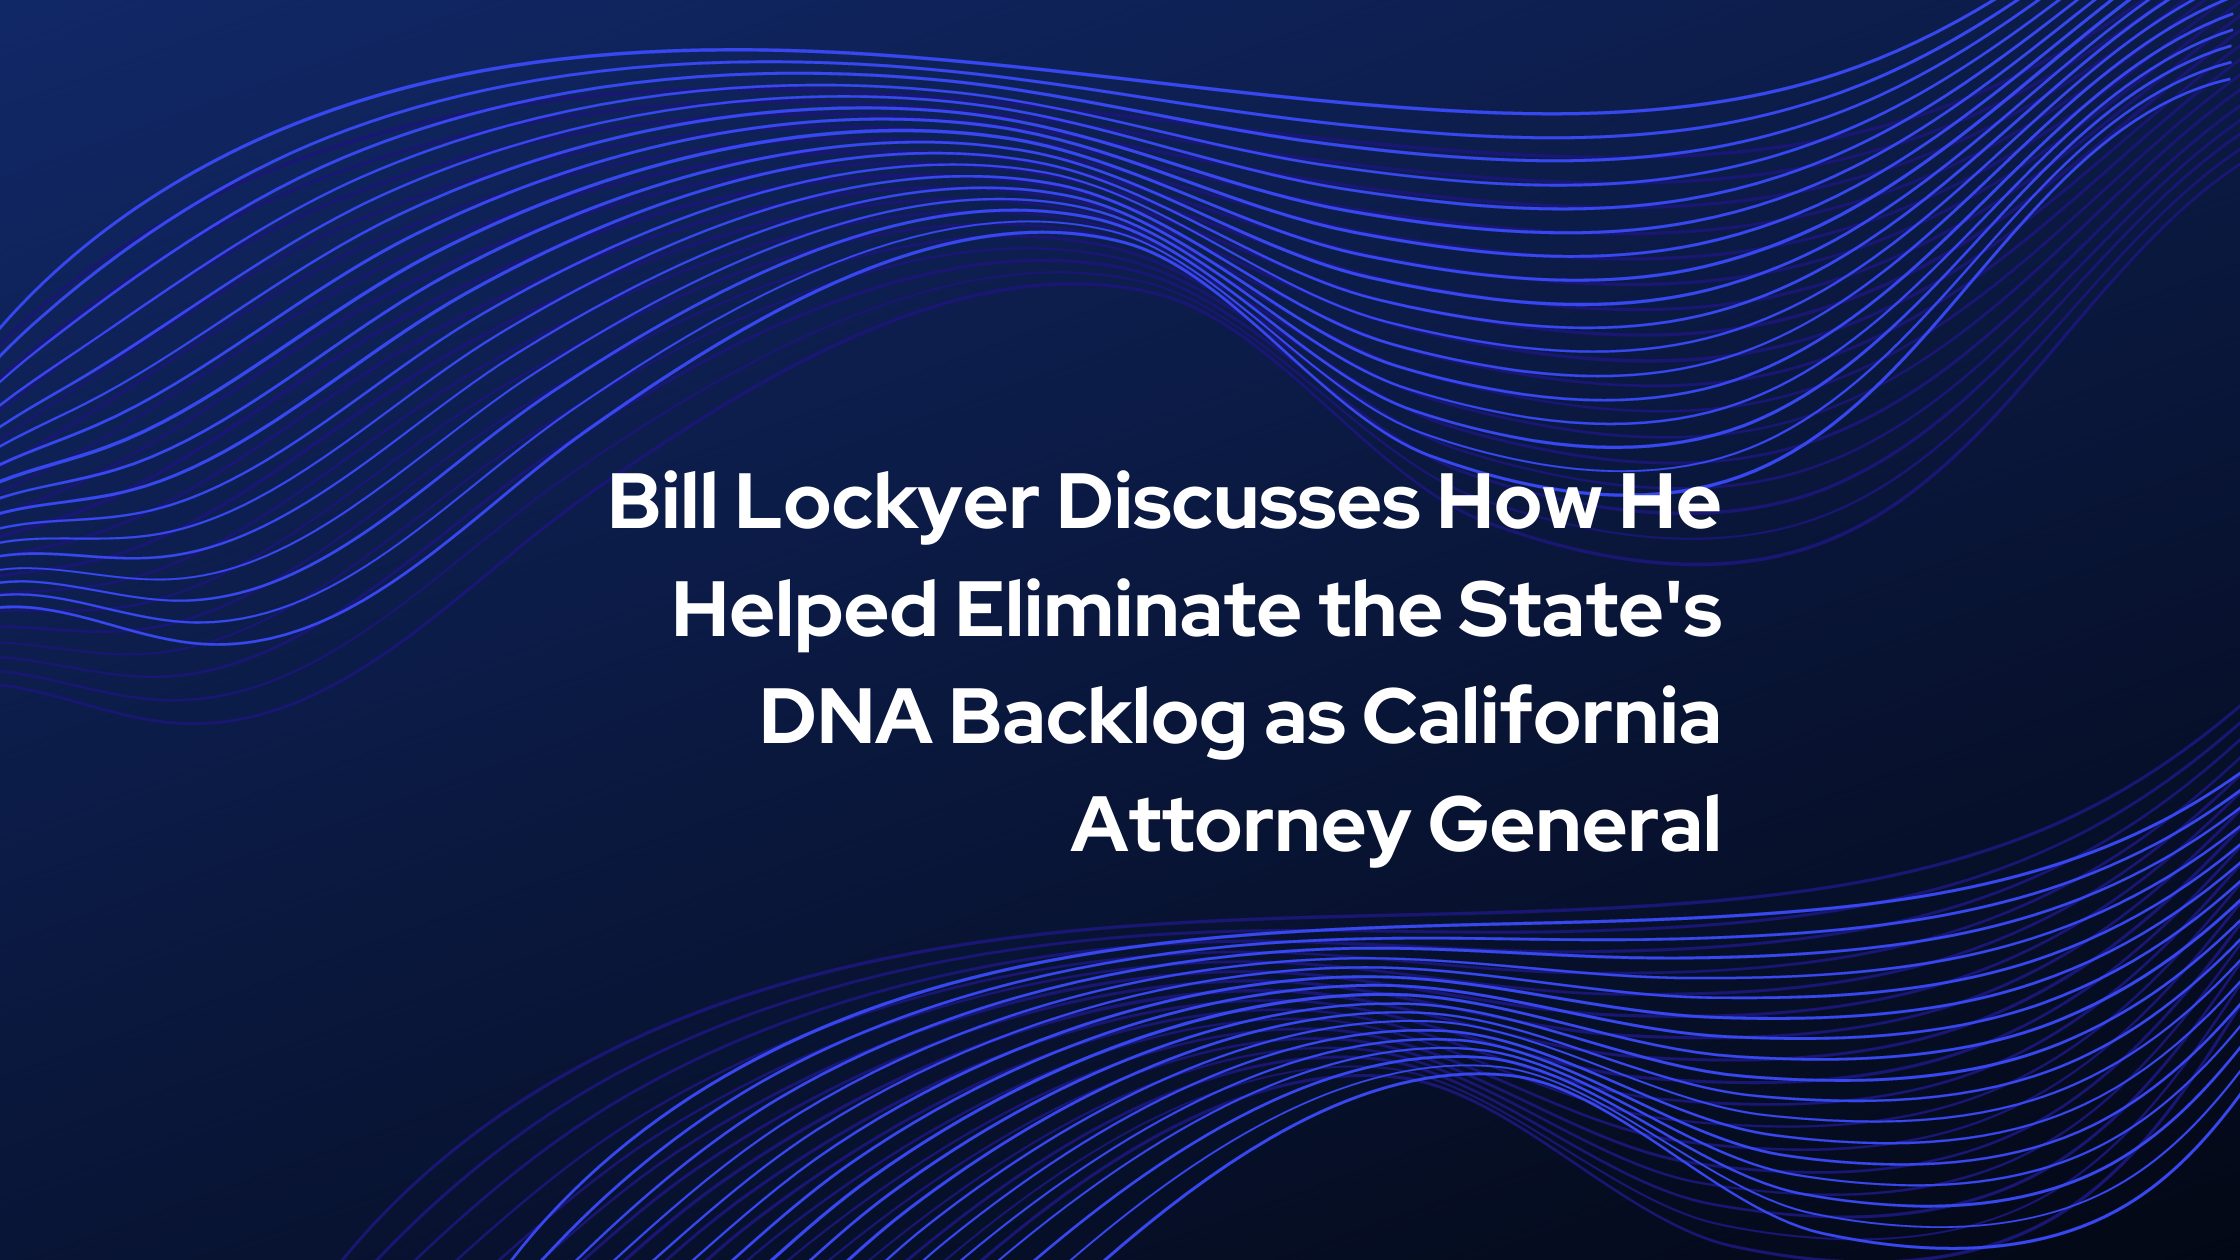 Bill Lockyer Discusses How He Helped Eliminate the States DNA Backlog as California Attorney General